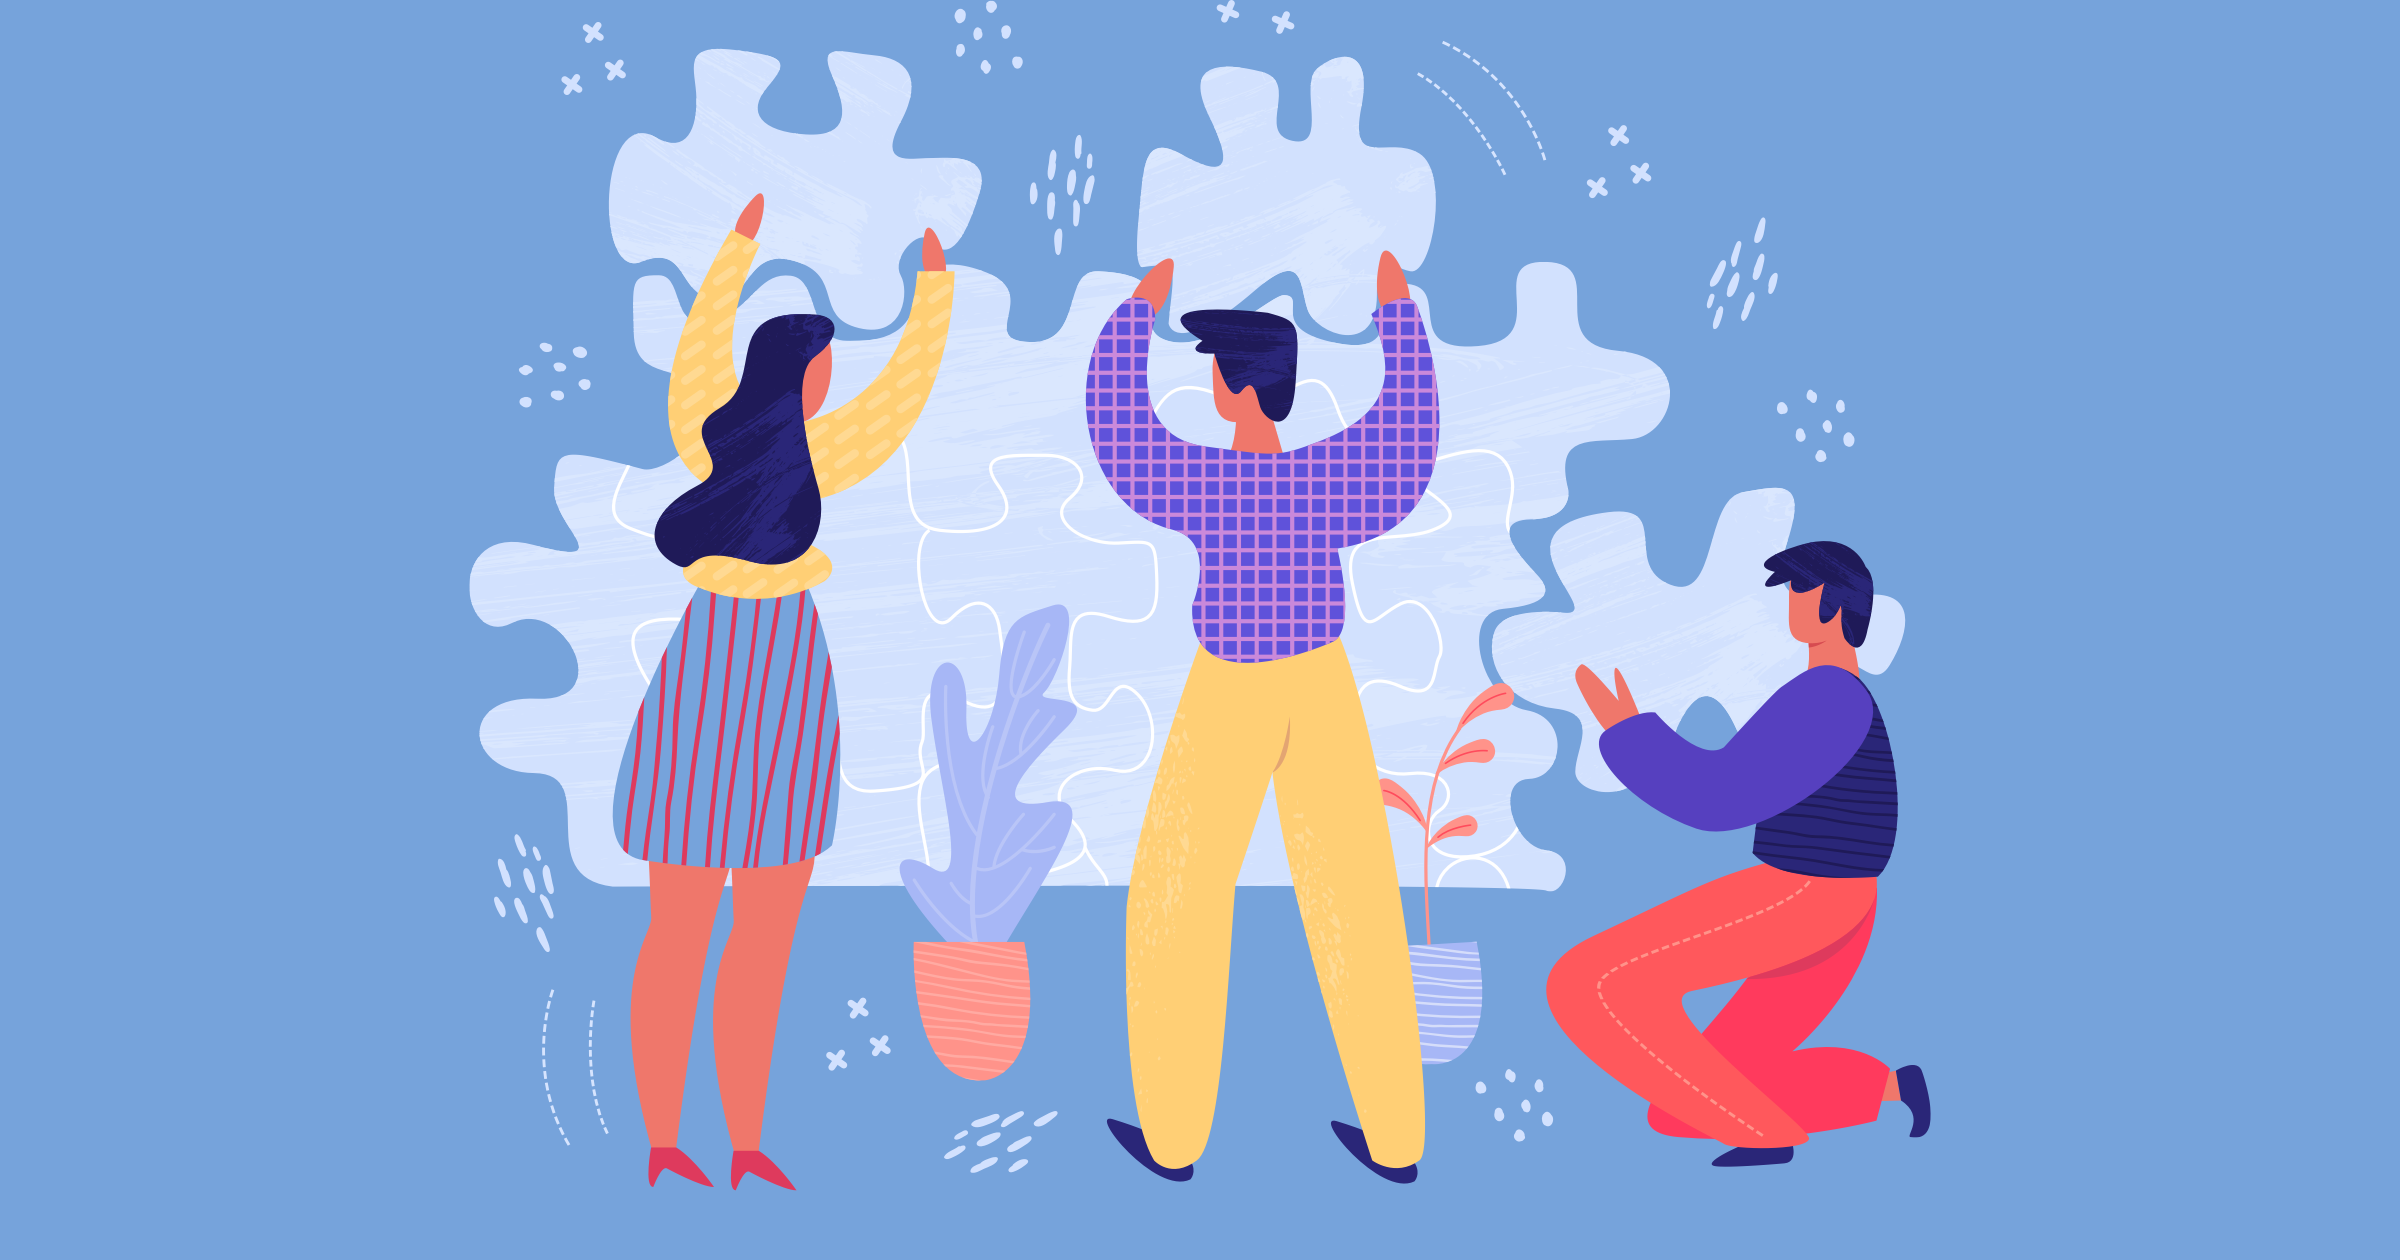 Team building games to help bond without the awkwardness